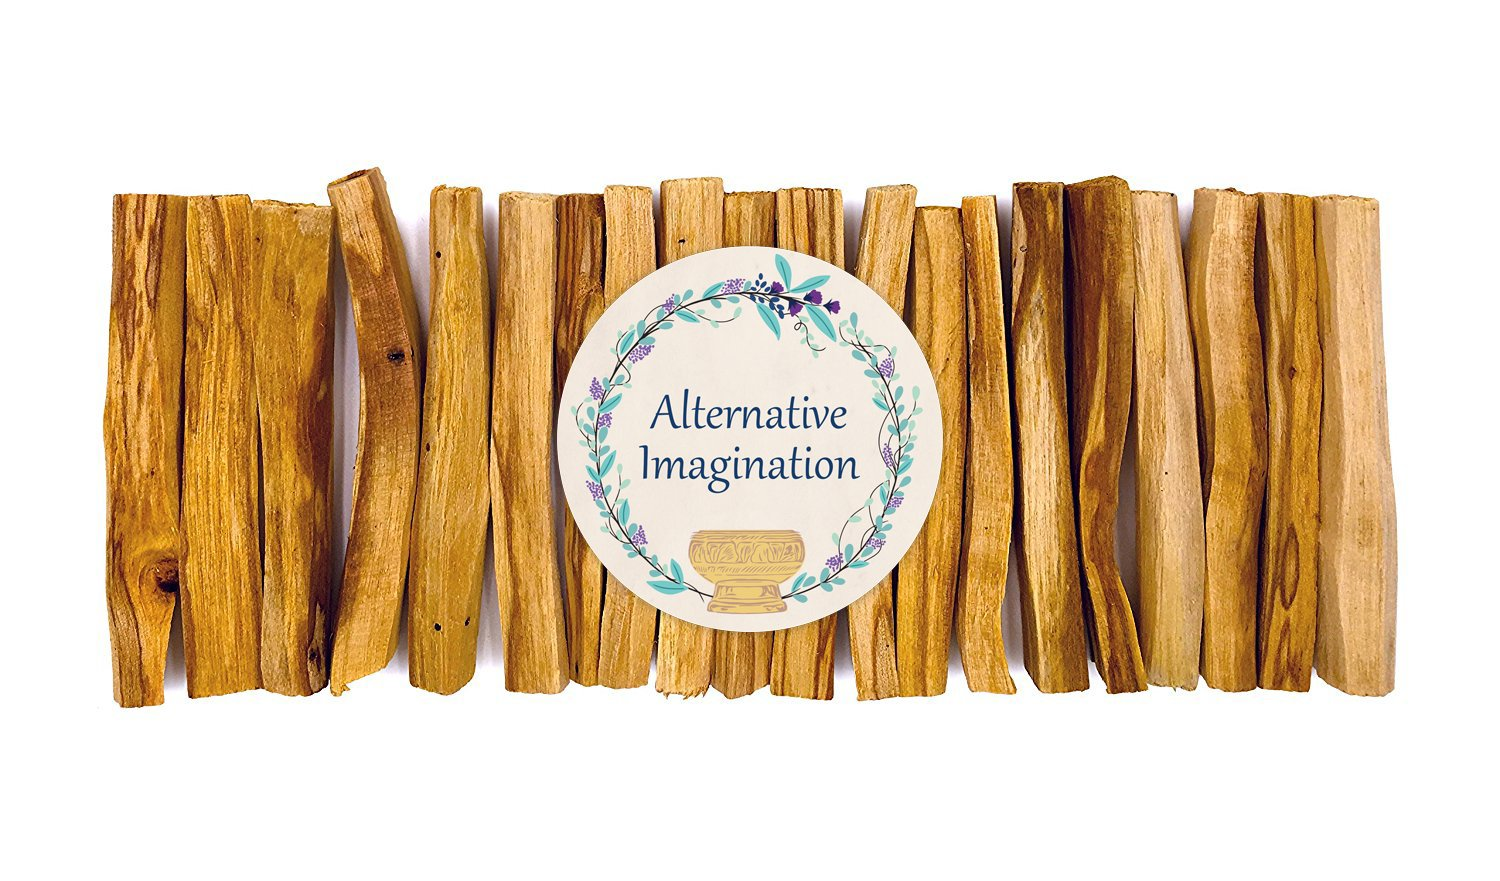 Alternative Imagination Premium Palo Santo Holy Wood Incense Sticks Purifying, Cleansing, Healing, Meditating, Stress Relief. 100% Natural Sustainable, Wild Harvested. (20)